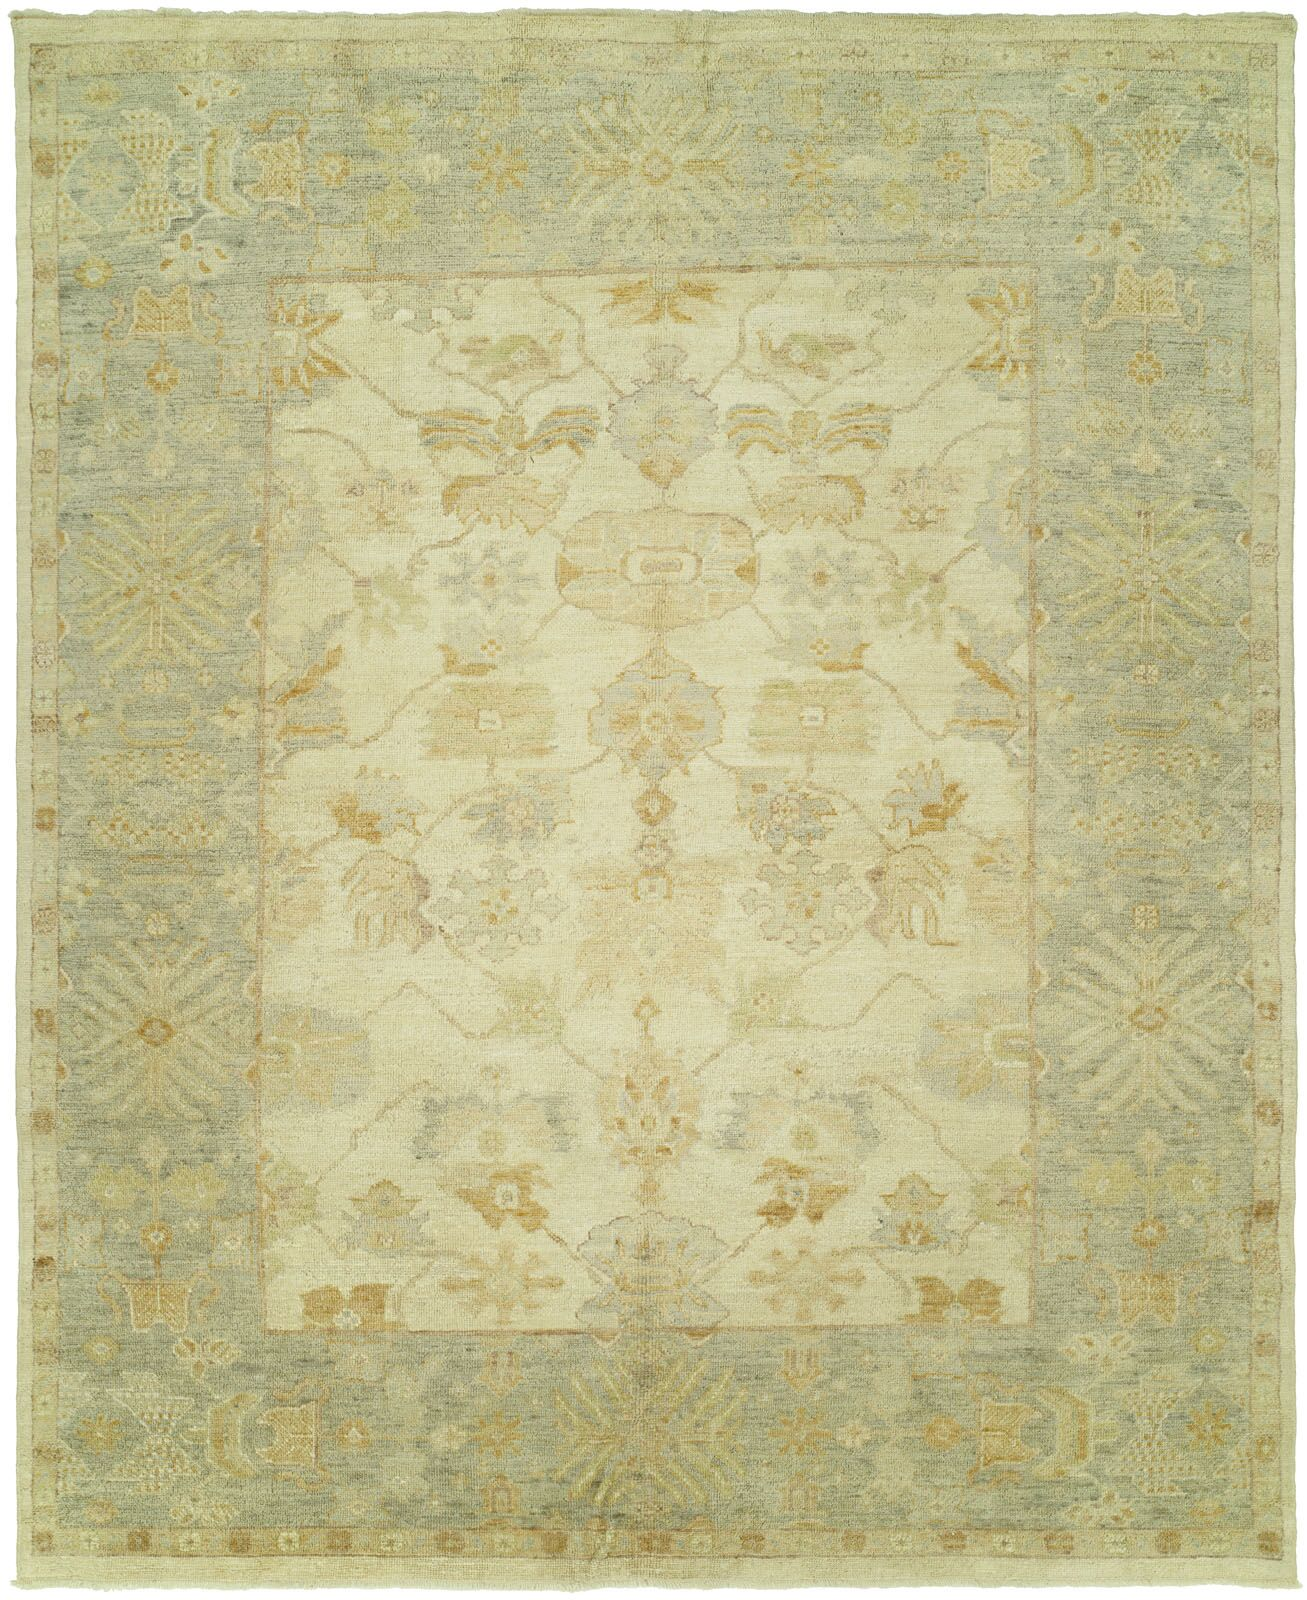 Mathers Hand Knotted Wool Ivory Area Rug Rug Size: Rectangle 2' x 3'